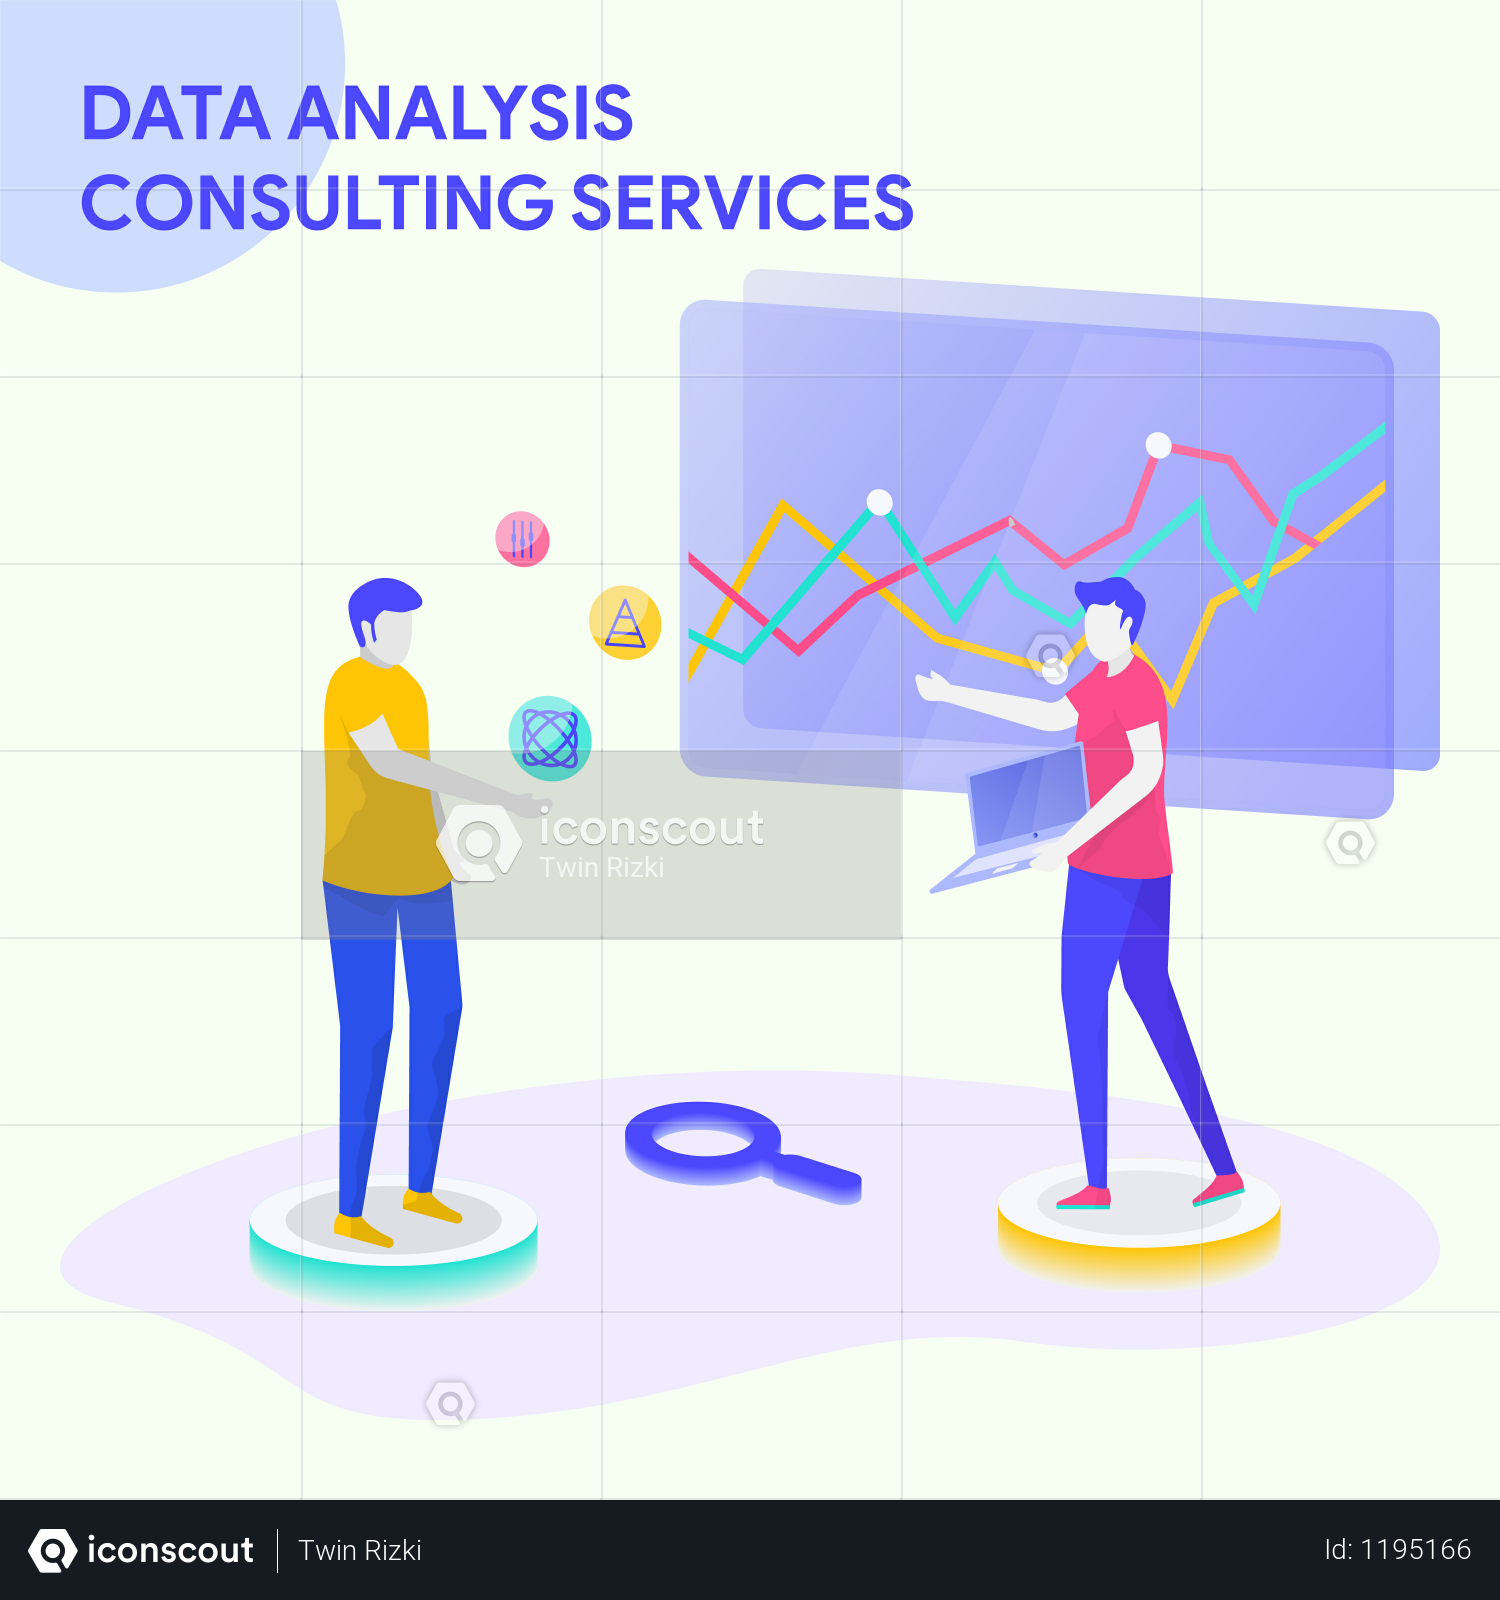 Data analysis and consulting services Illustration